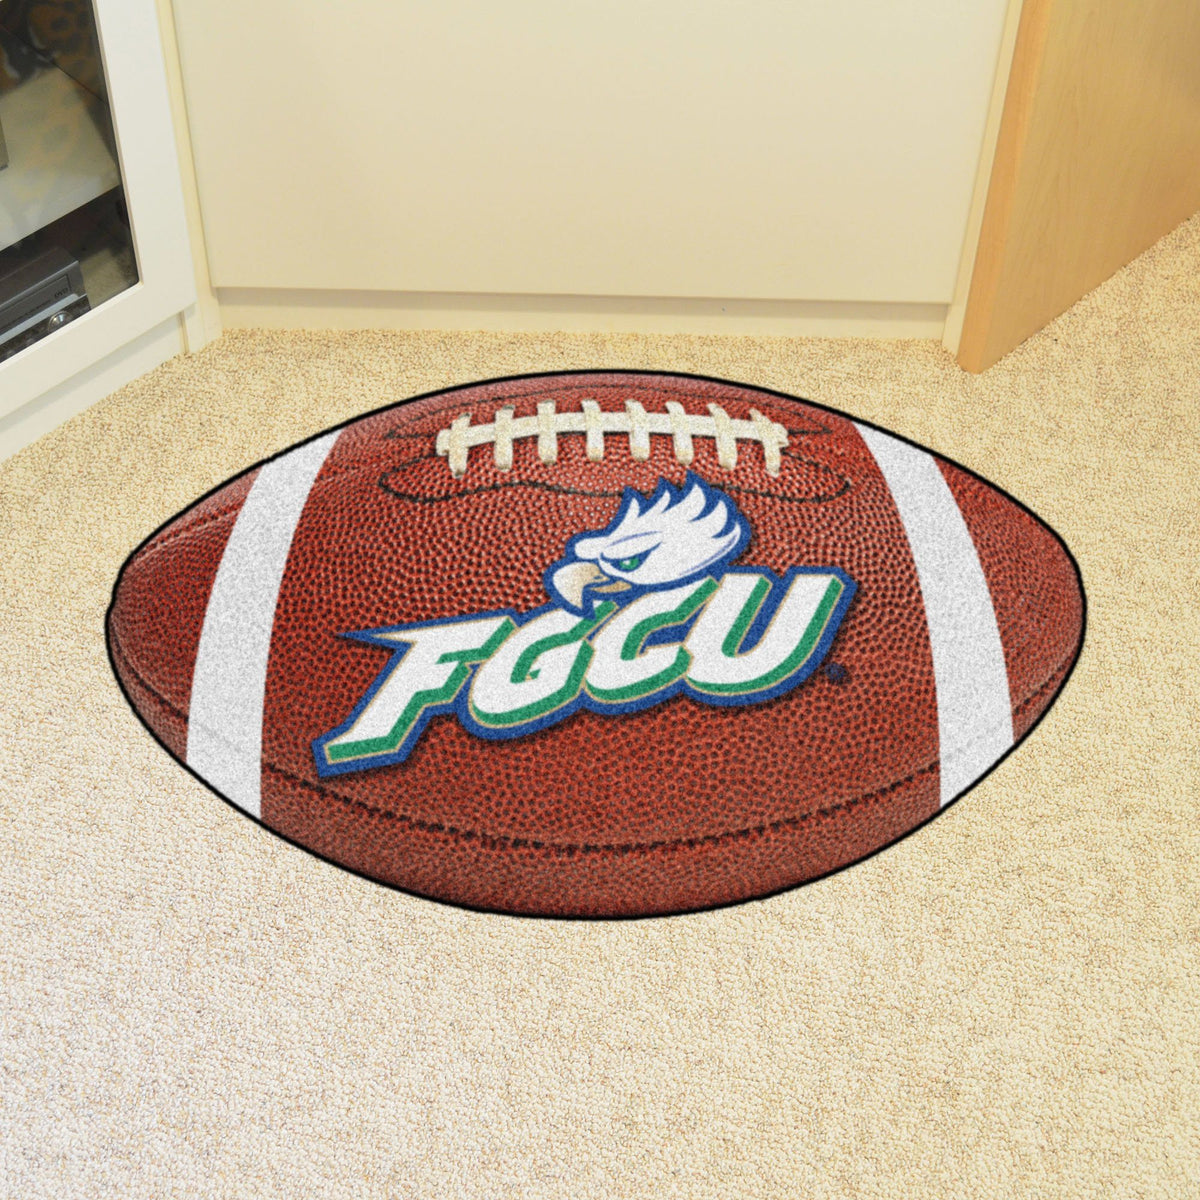 Collegiate - Football Mat: A - K Collegiate Mats, Rectangular Mats, Football Mat, Collegiate, Home Fan Mats Florida Gulf Coast